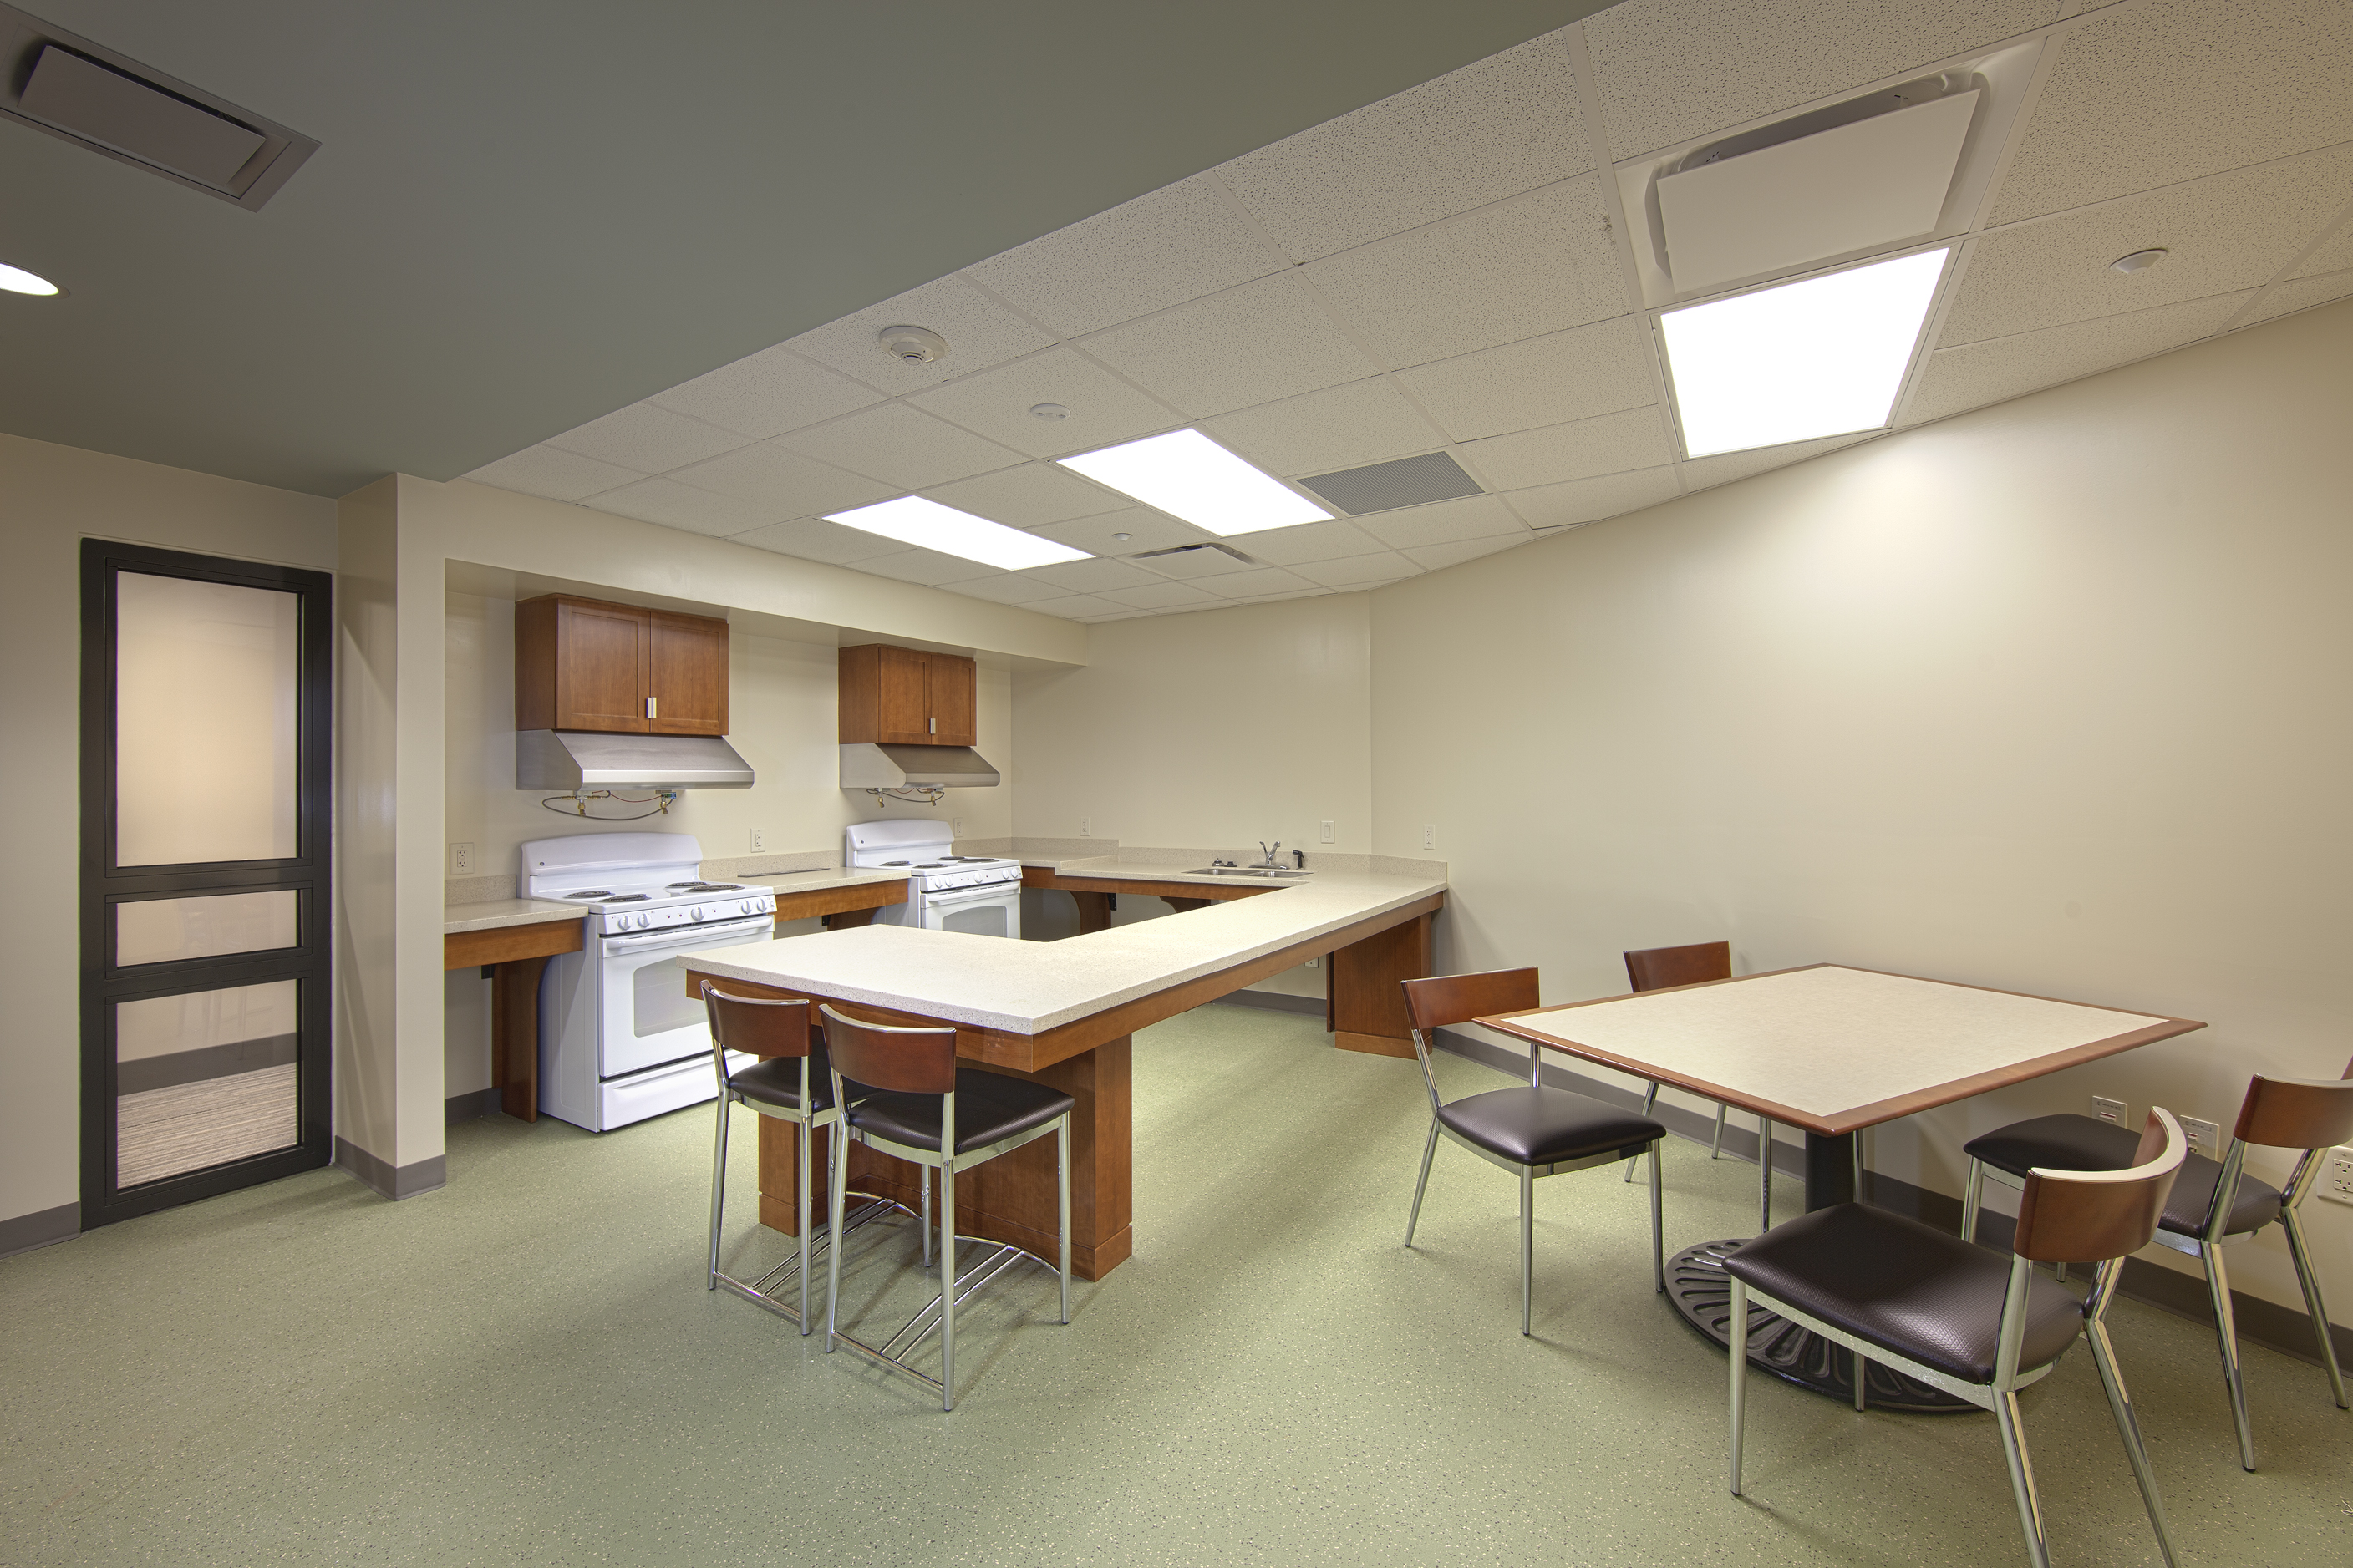 Residence hall 1516 university architects for Kitchen outlays